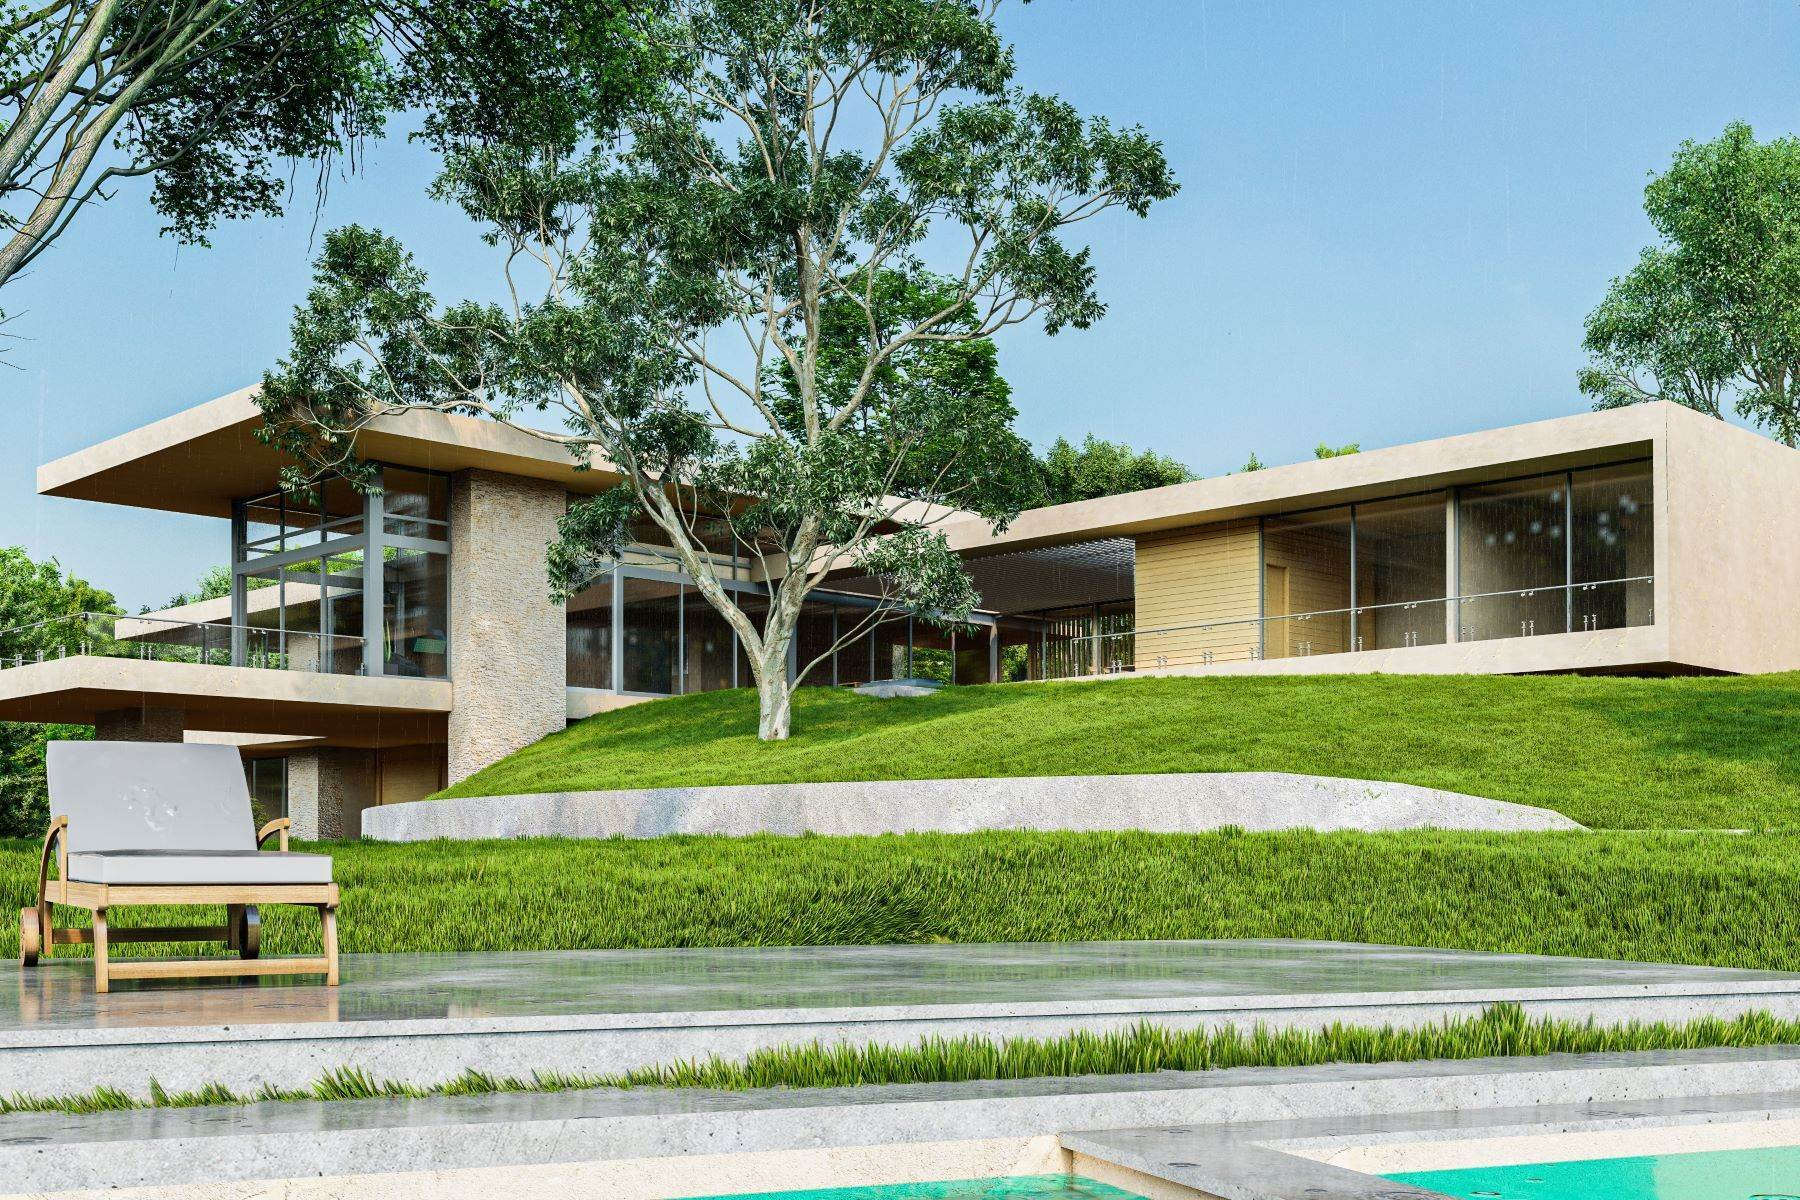 Land for Sale at Swatt-Miers Designed, Modern Masterpiece 4144 Canyon Road Lafayette, California 94549 United States